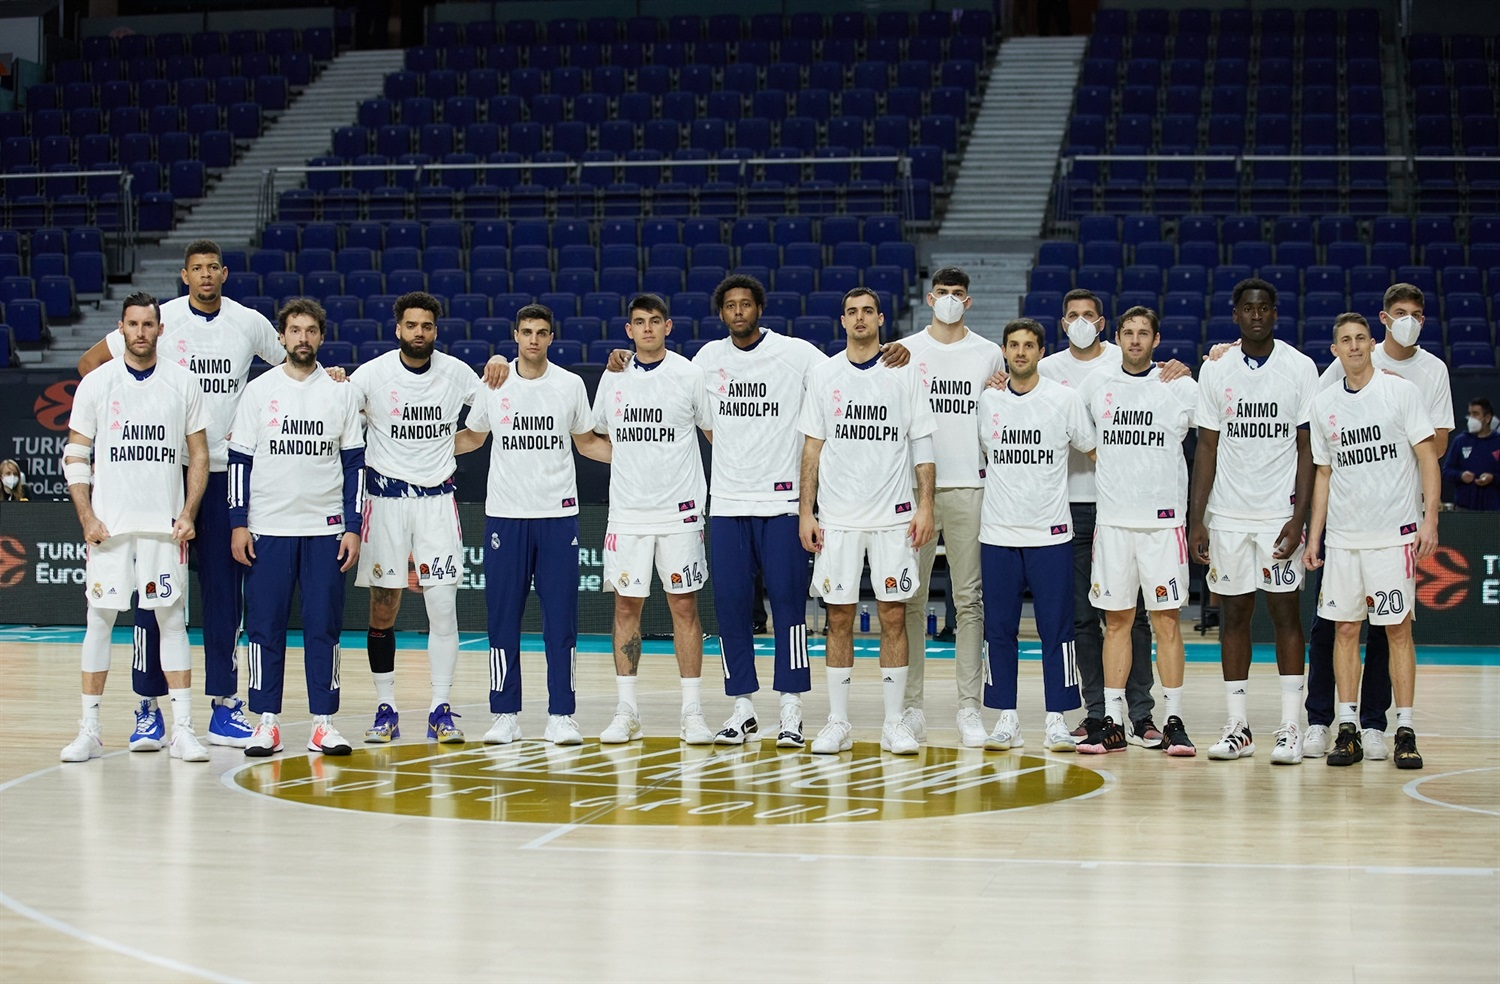 Animo Randolph - Real Madrid - EB20